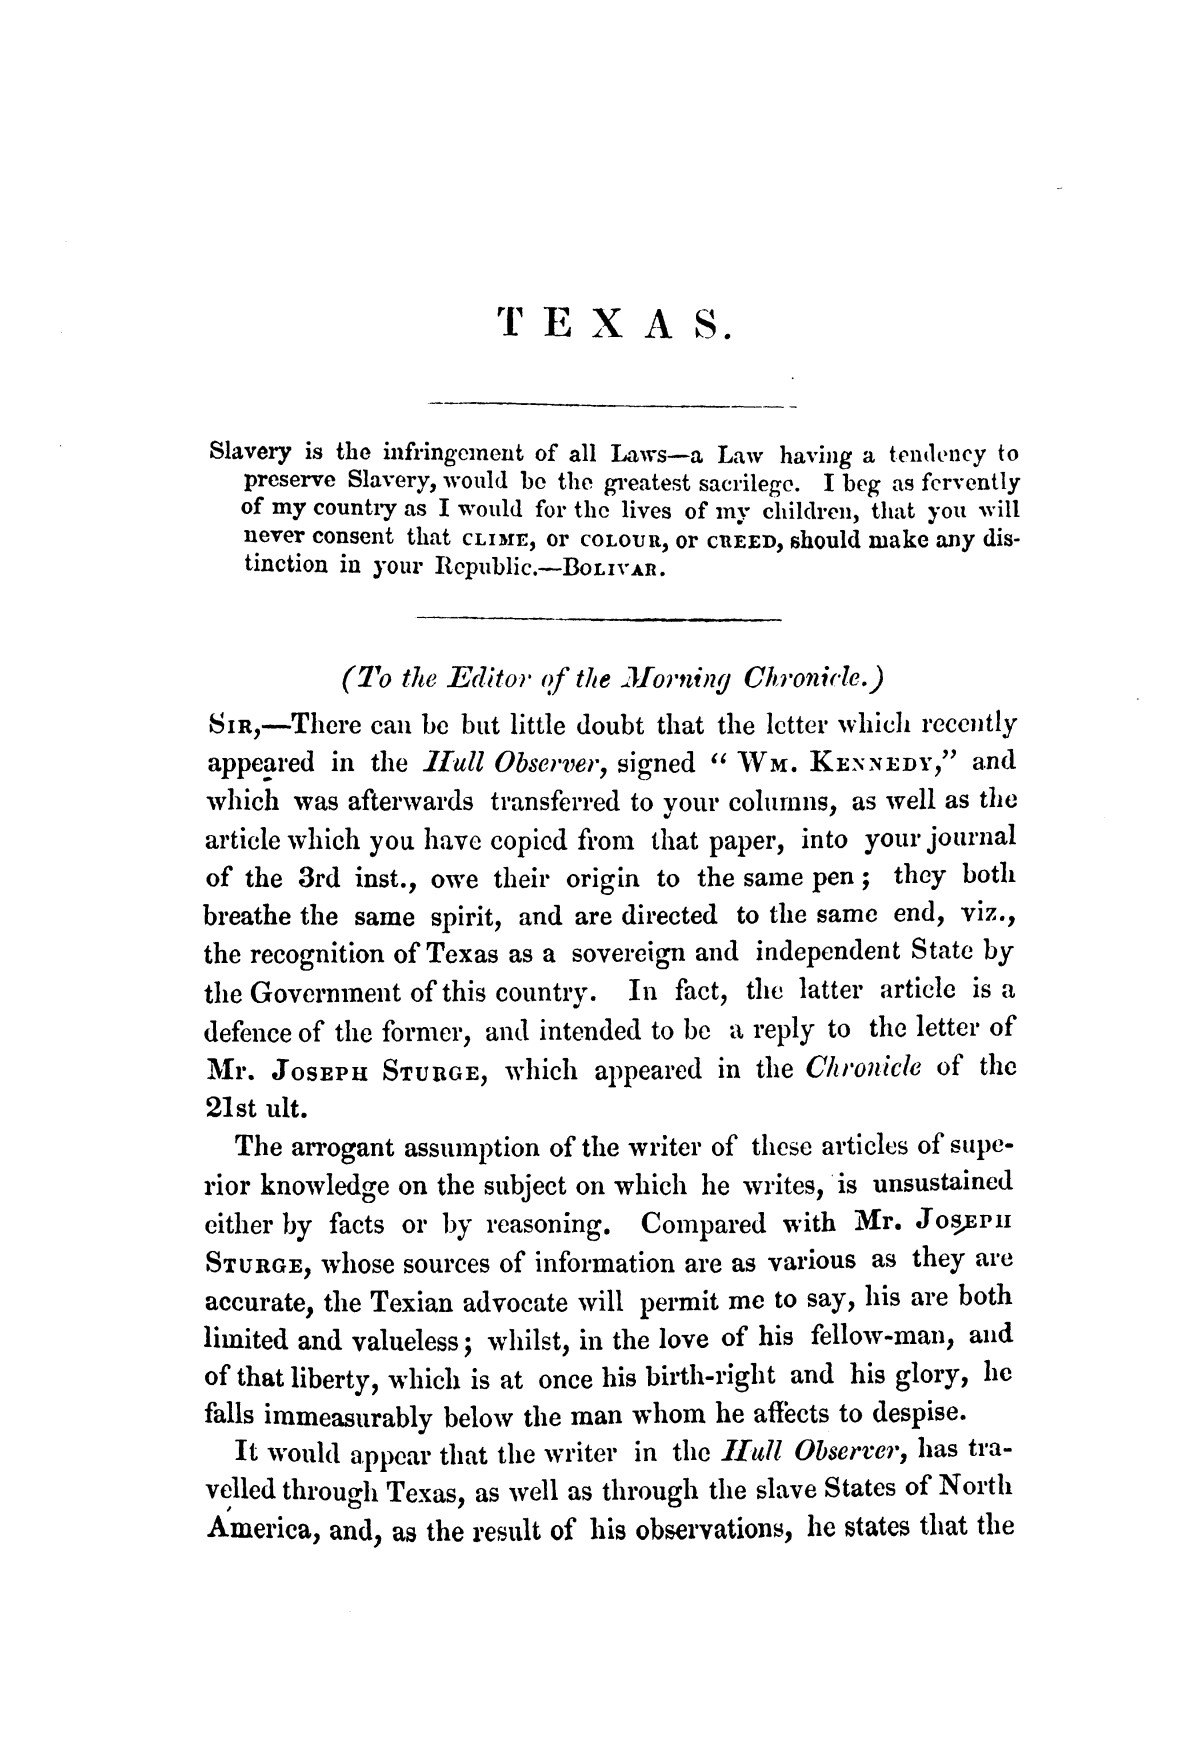 Texas, its claims to be recognised as an independent power by Great Britain : examined in a series of letters                                                                                                      [Sequence #]: 9 of 58